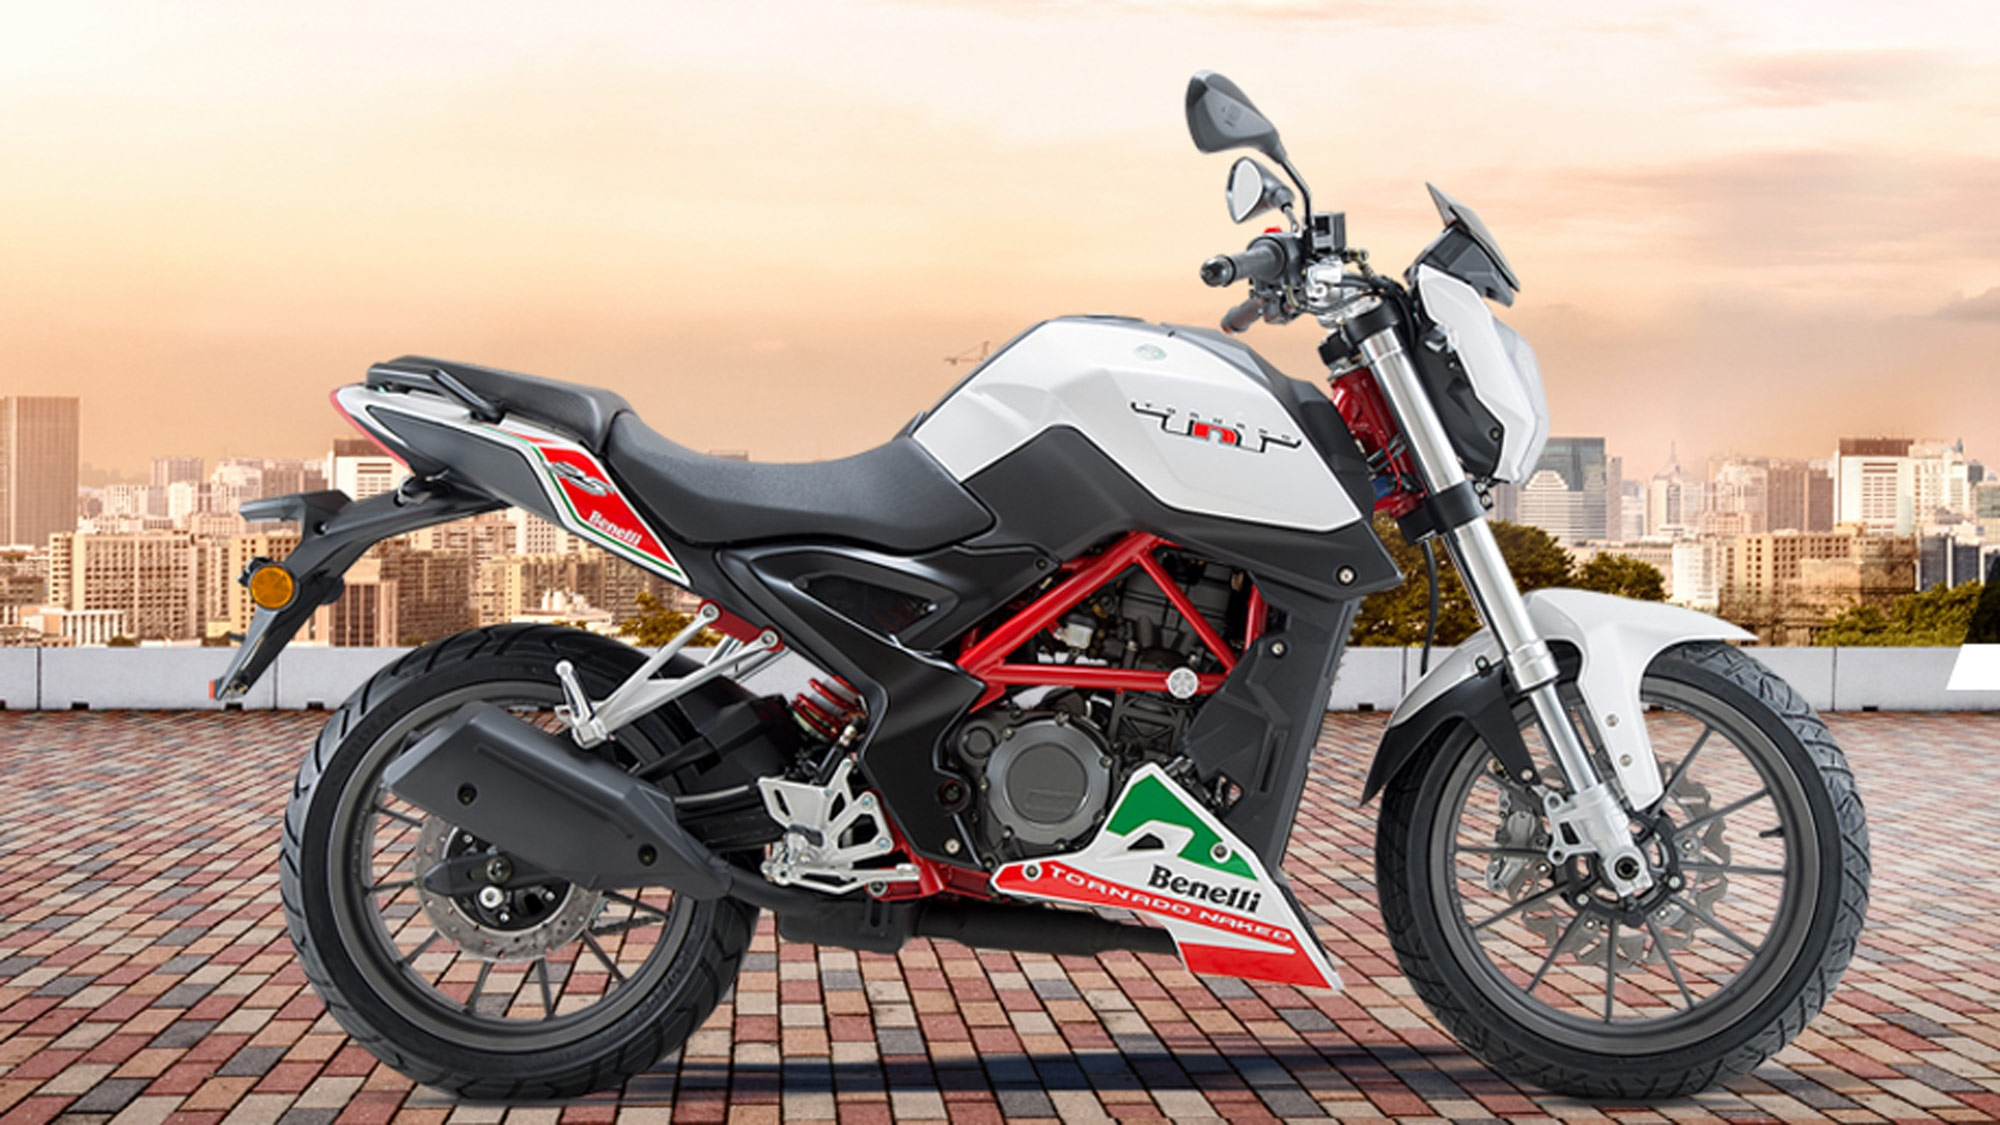 250cc DSK Benelli TNT 25 Launched In India At Rs 1.68 Lakh